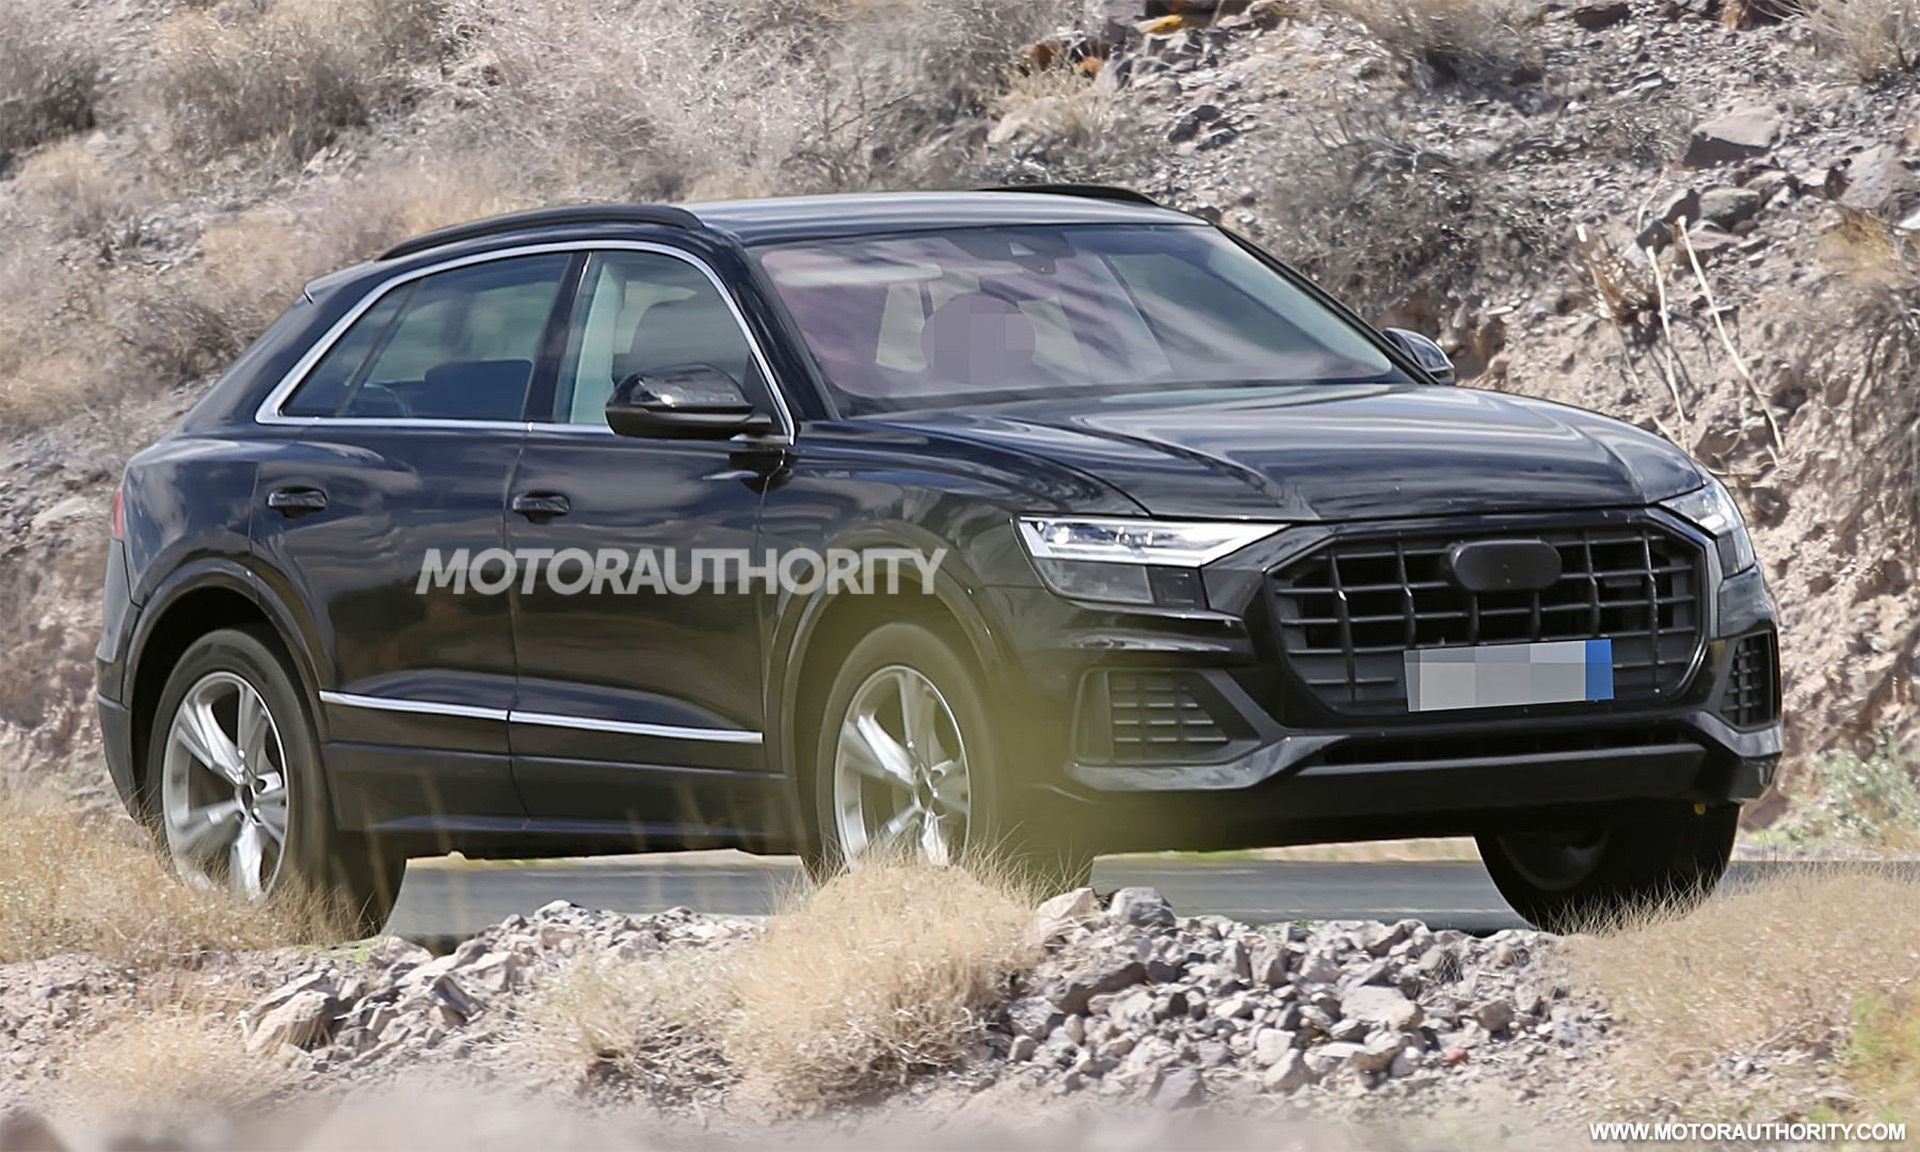 58 The 2020 Audi Q7 Price and Release date